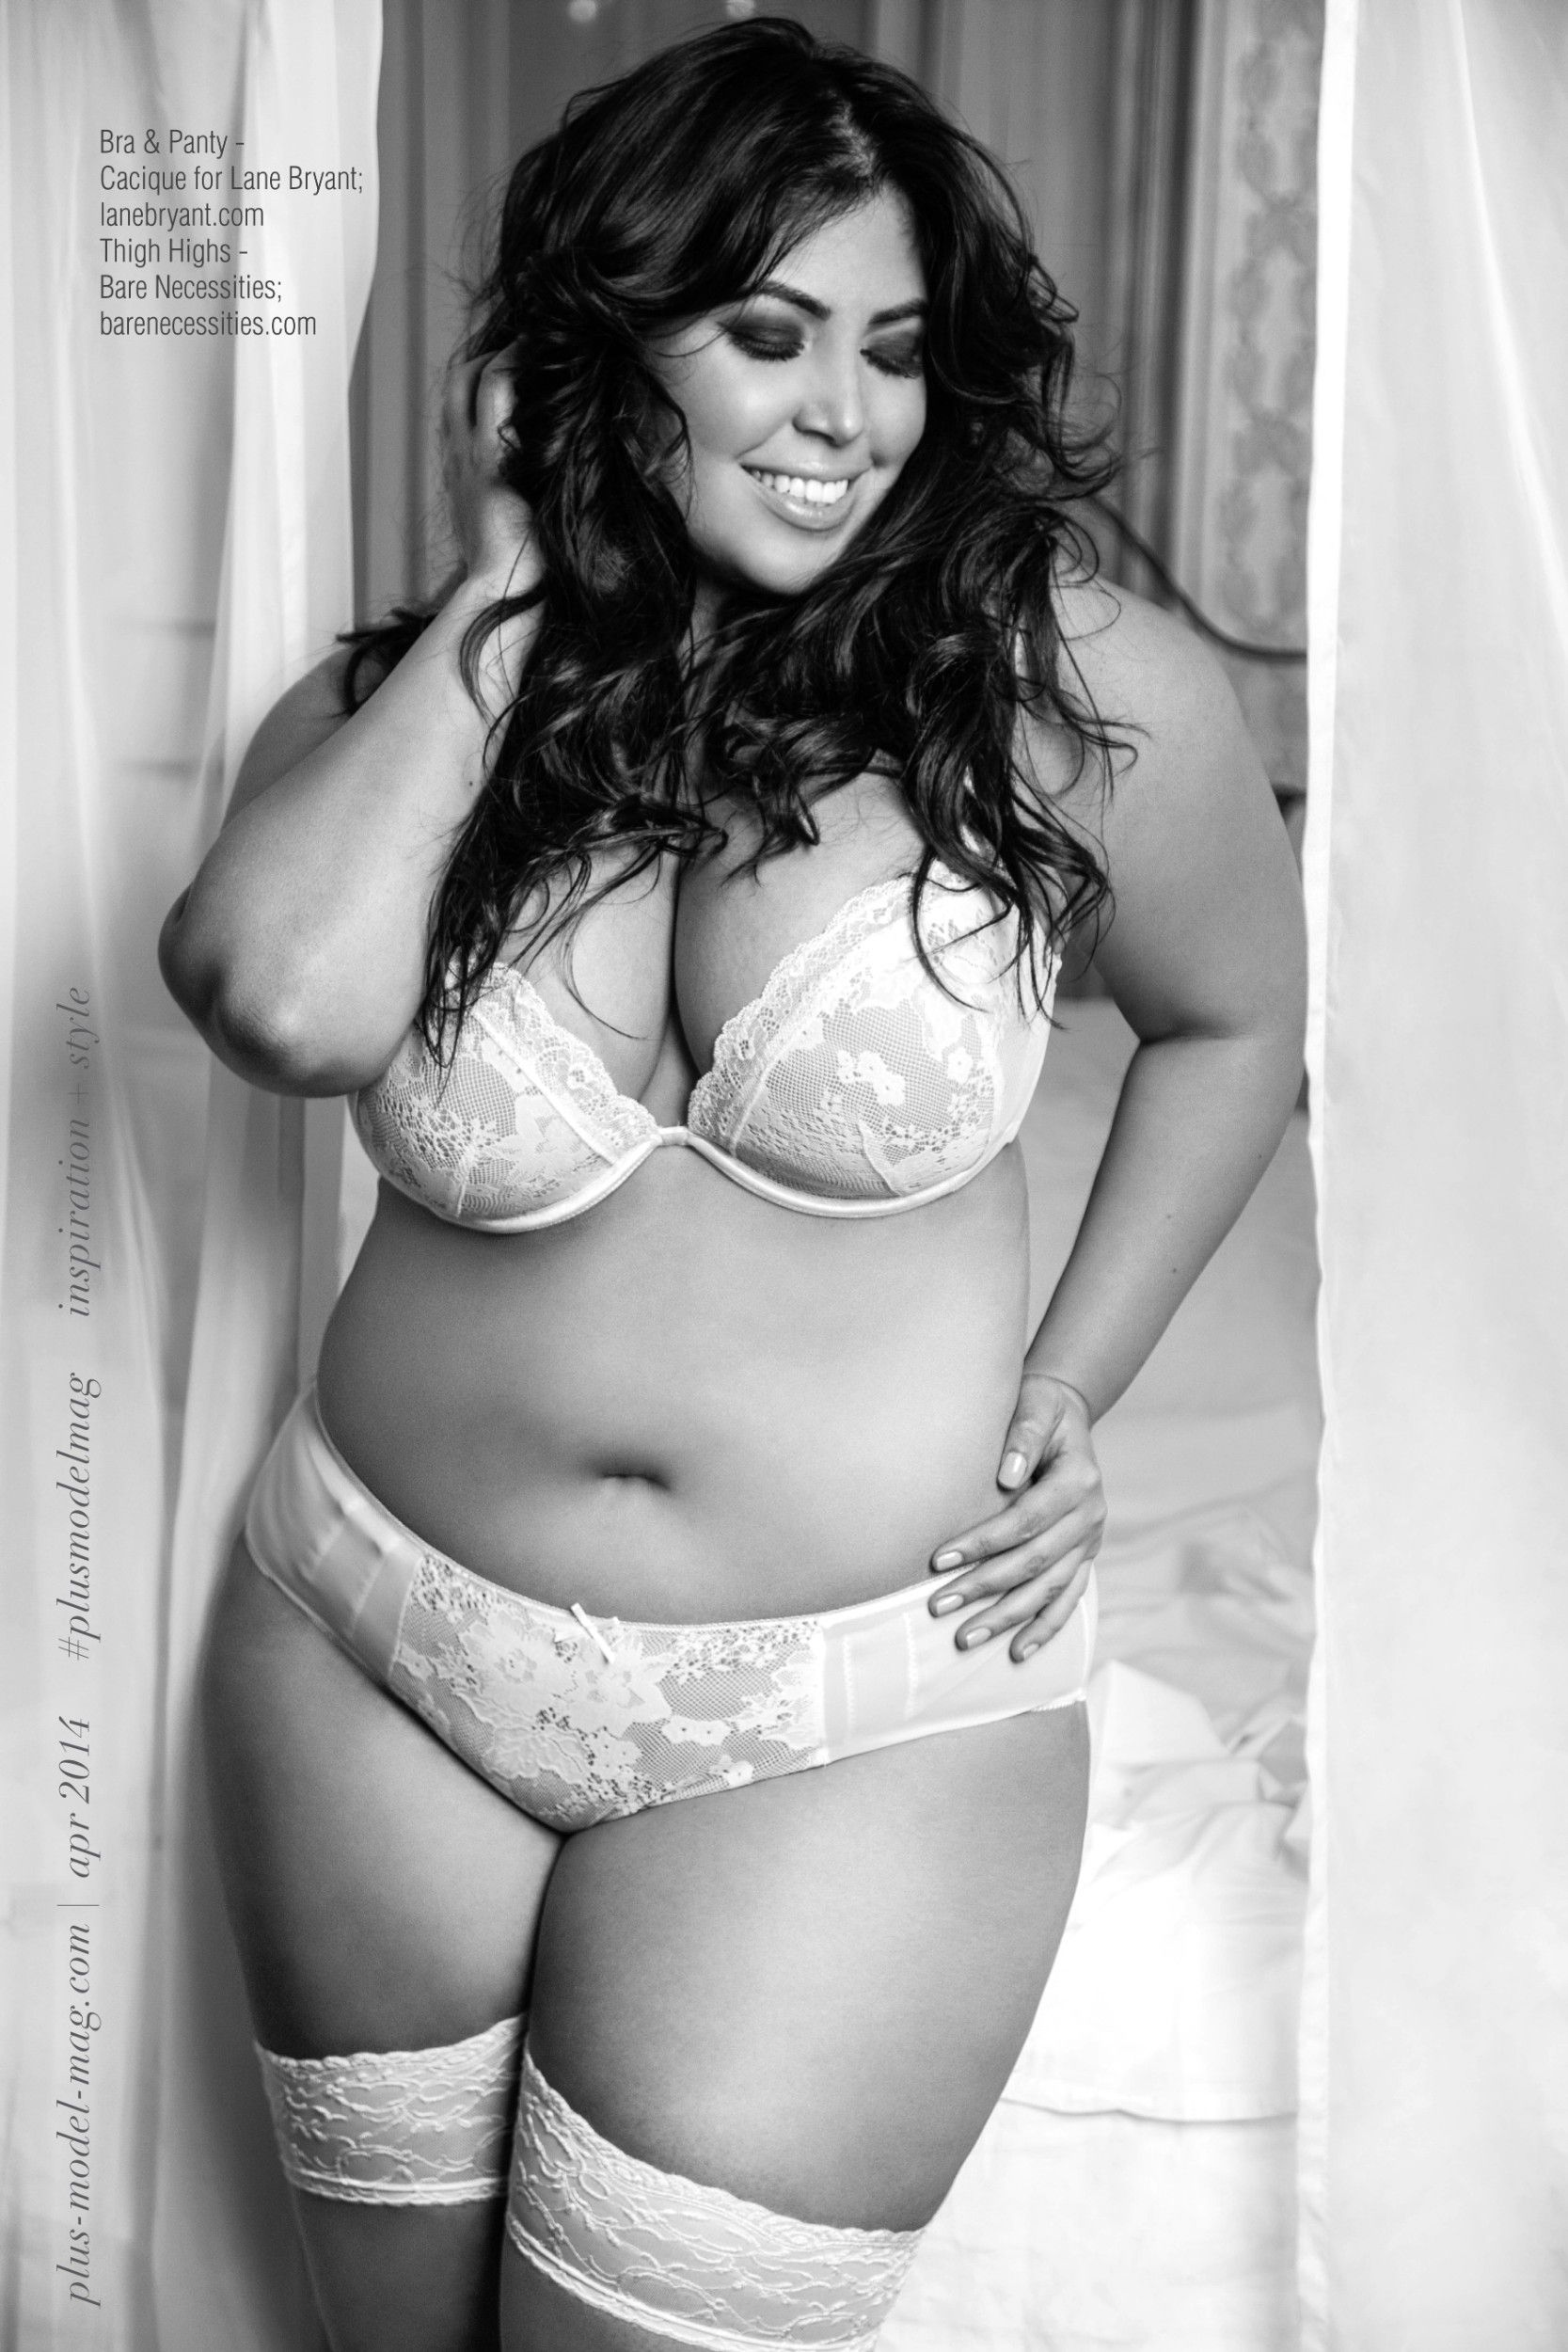 Jessica plus size black women nude apologise